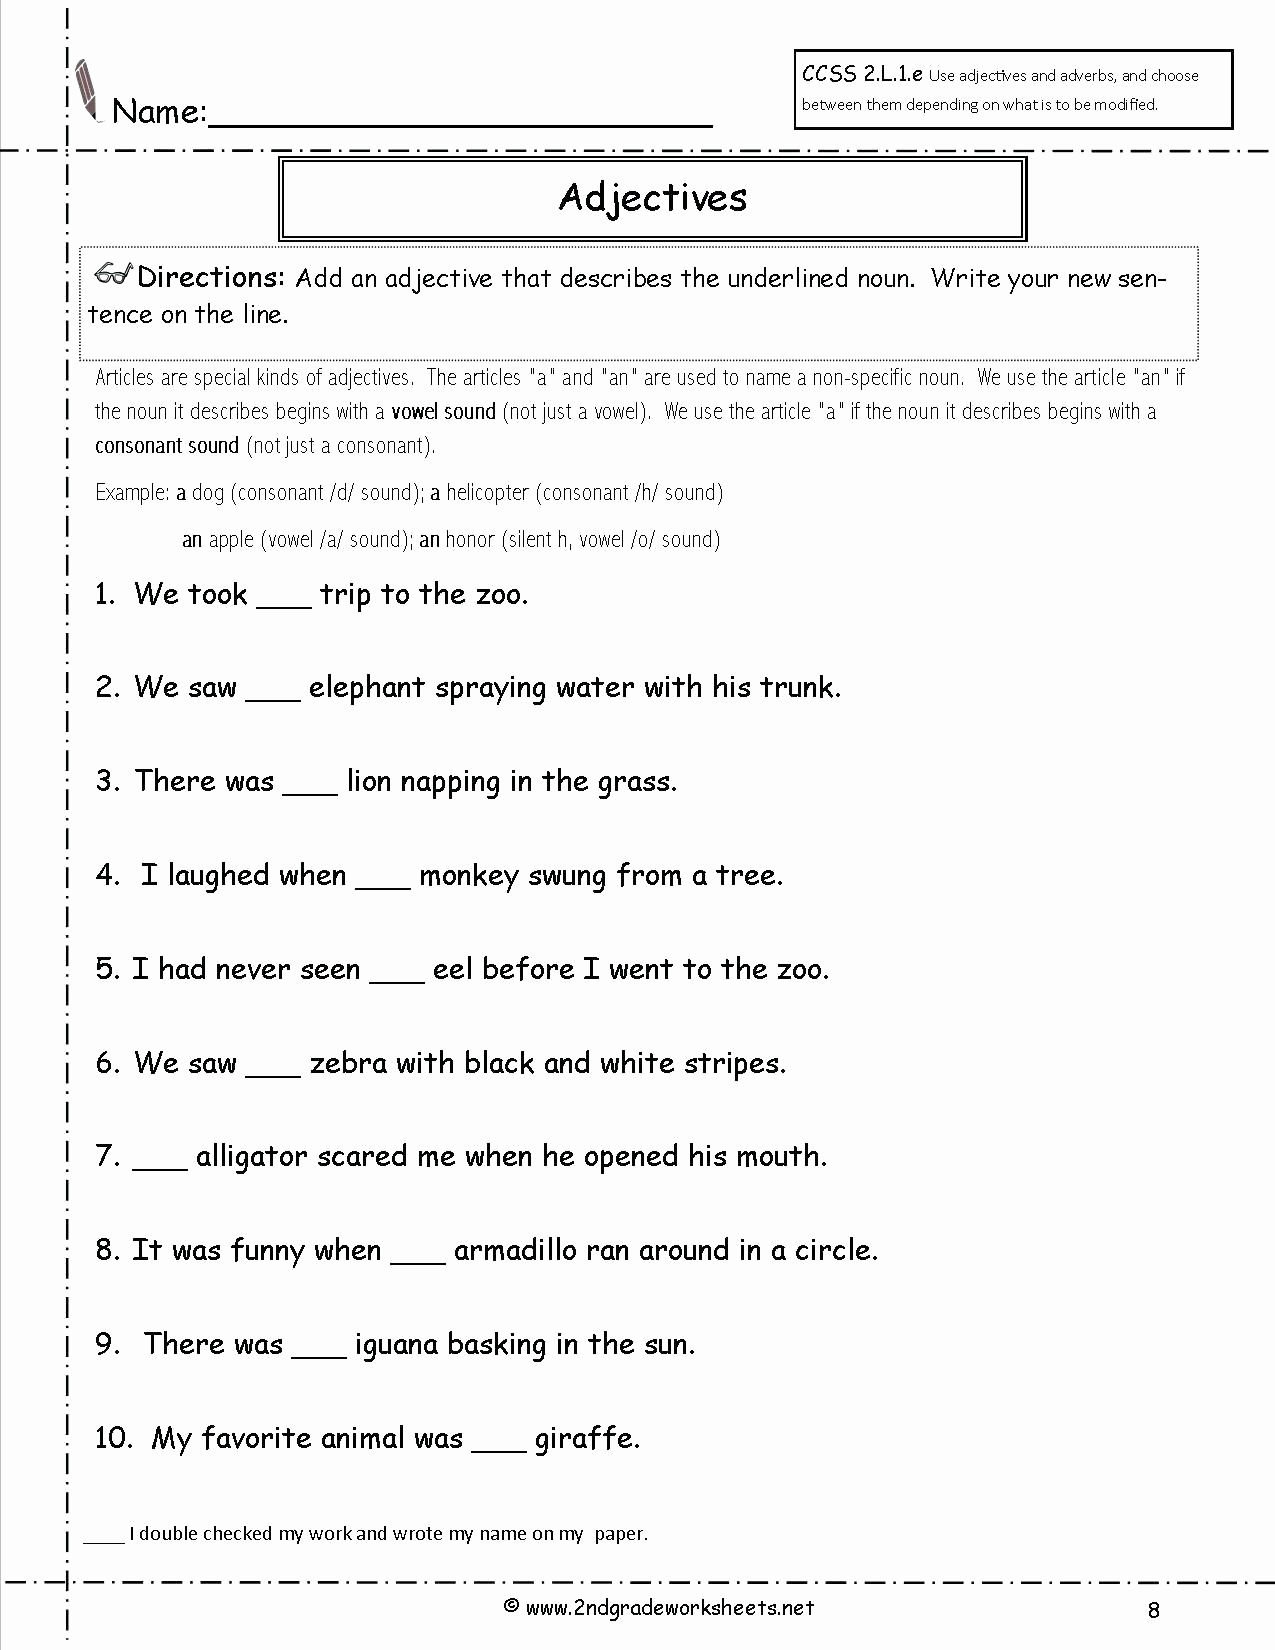 Editing and Proofreading Worksheets Unique Proofreading and Editing Worksheets Grade 6